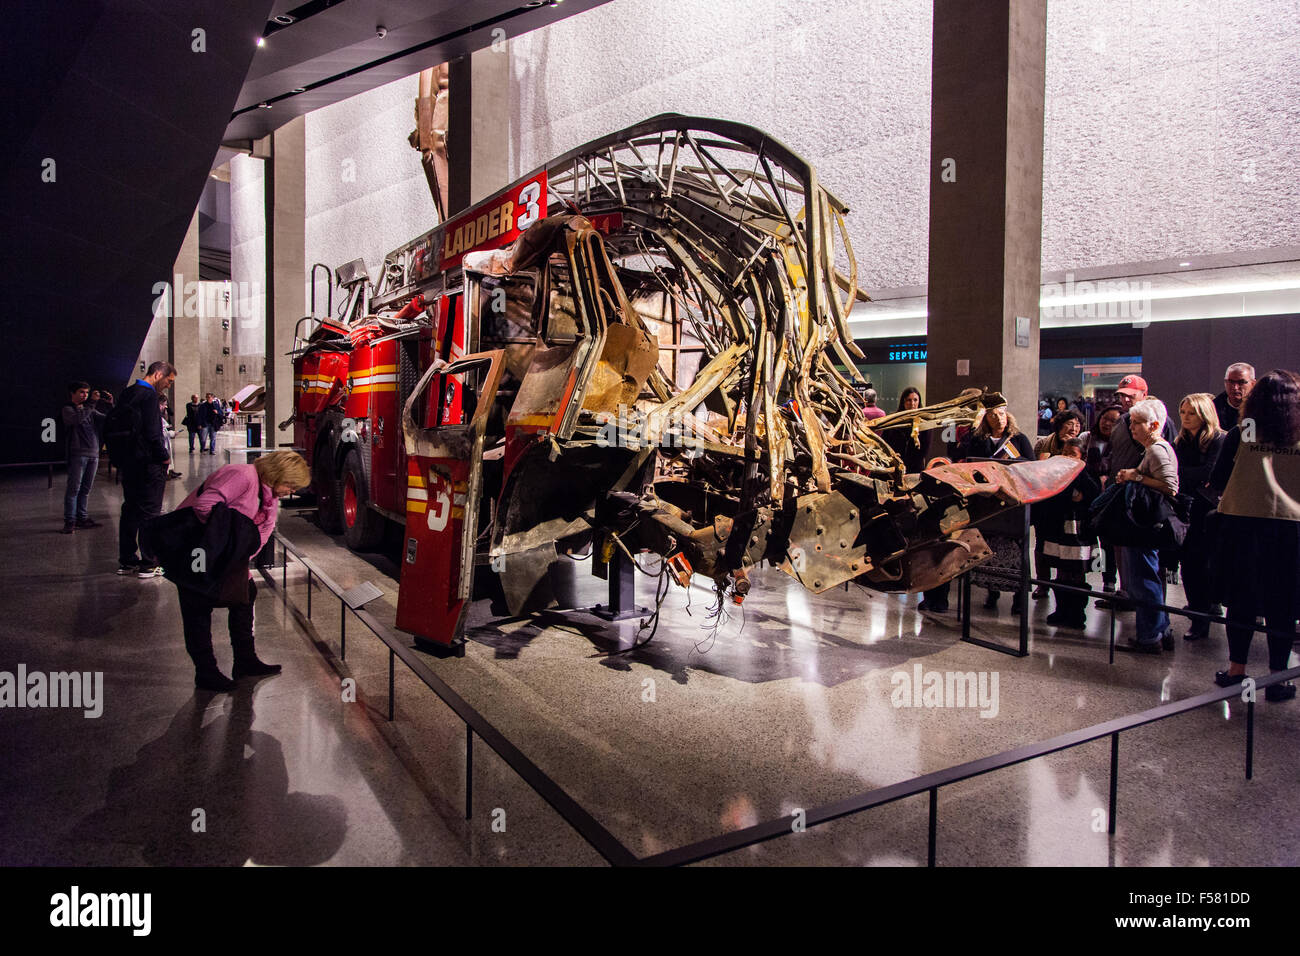 Crushed fire truck, ladder 3, National September 11 Memorial & Museum 9/11, New York City, United States of America. Stock Photo